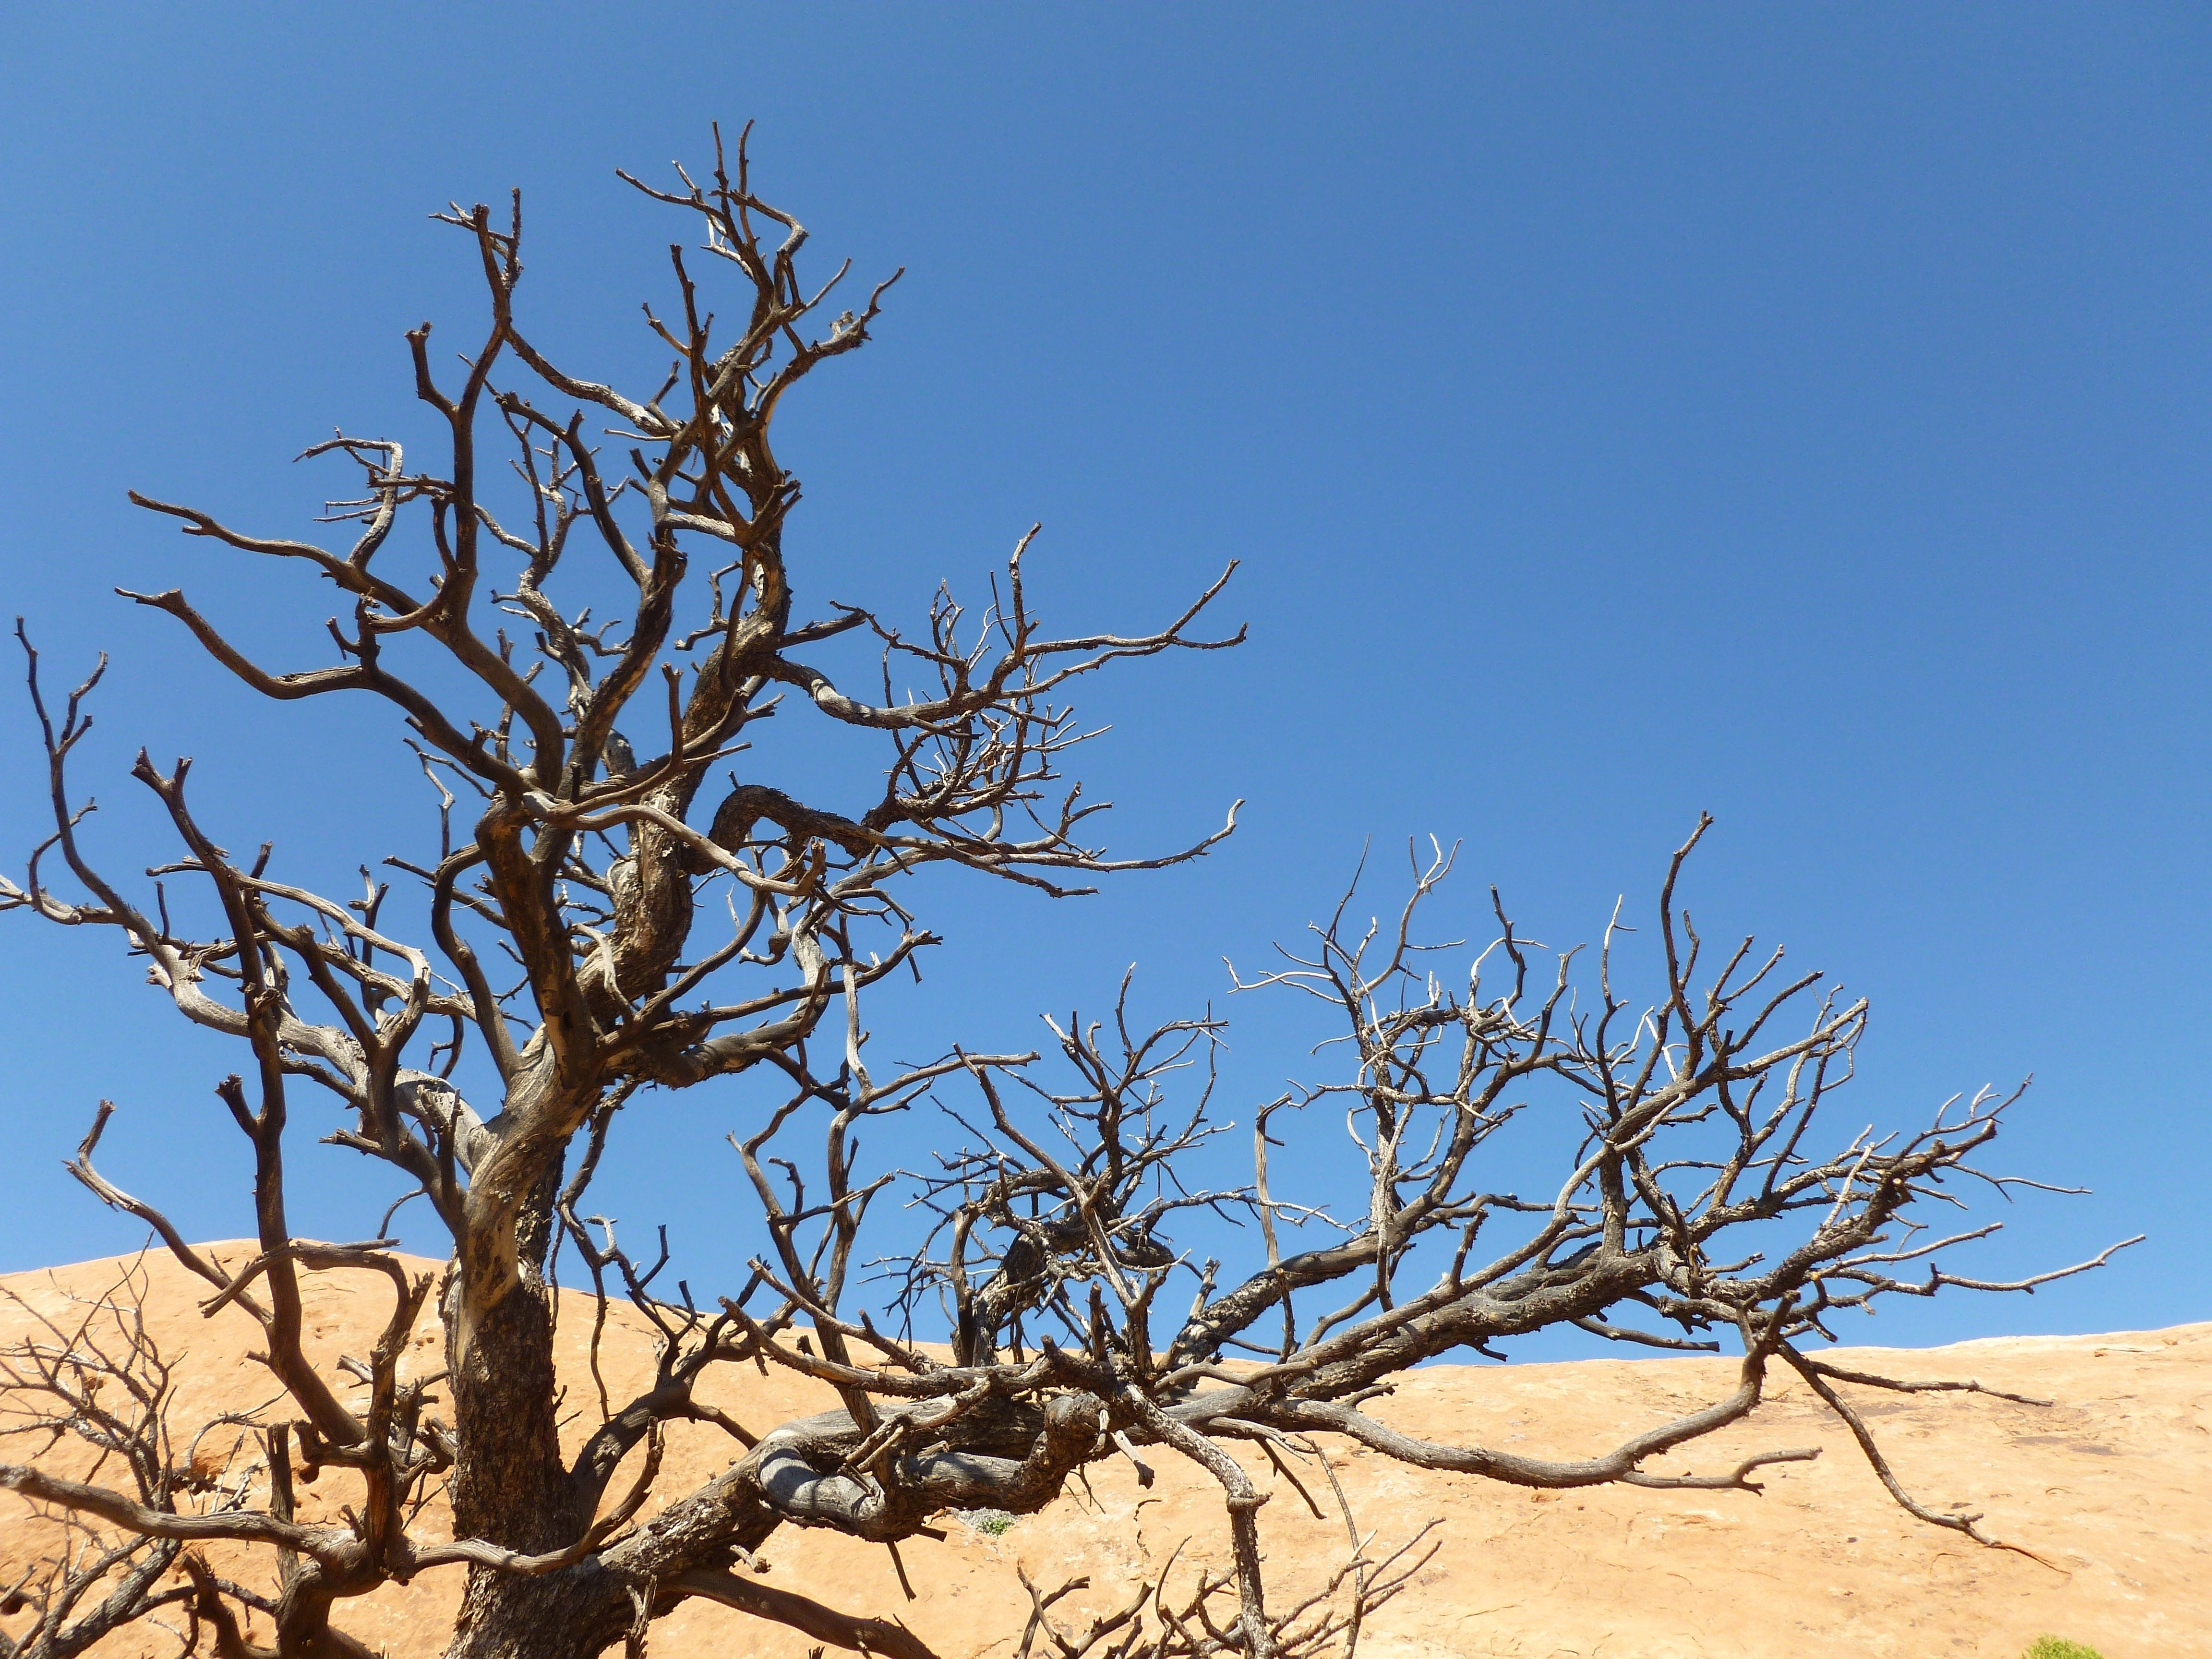 Bare and gnarled tree branches against a sand dune and a blue sky